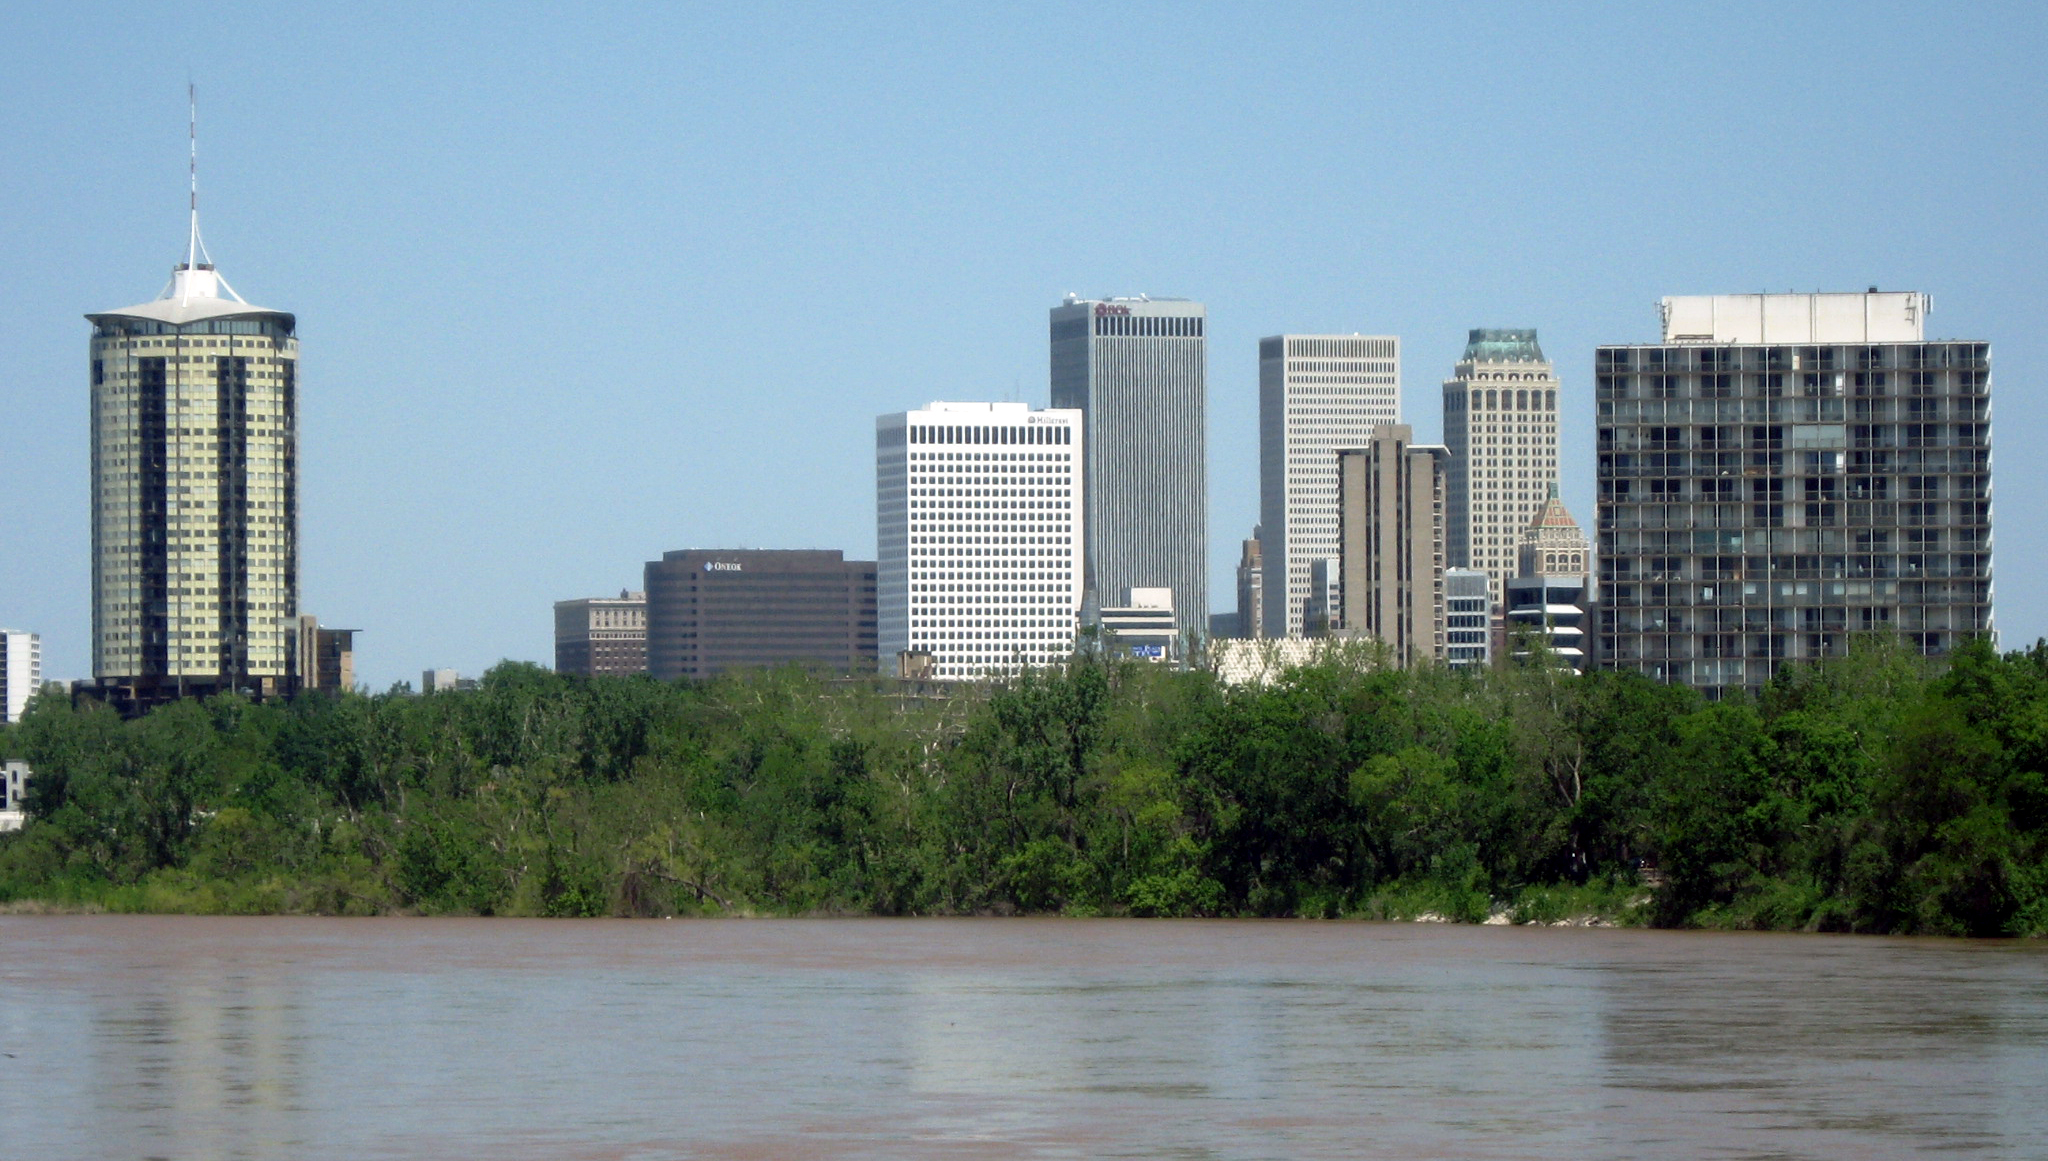 Tulsa, Oklahoma. In 1974, flood victims pressured the city government to reduce flood damage, which ballooned into a major program to make the city more disaster-resistant and sustainable that continues to this day. By 1992, Tulsa had the lowest flood insurance rates in the country.